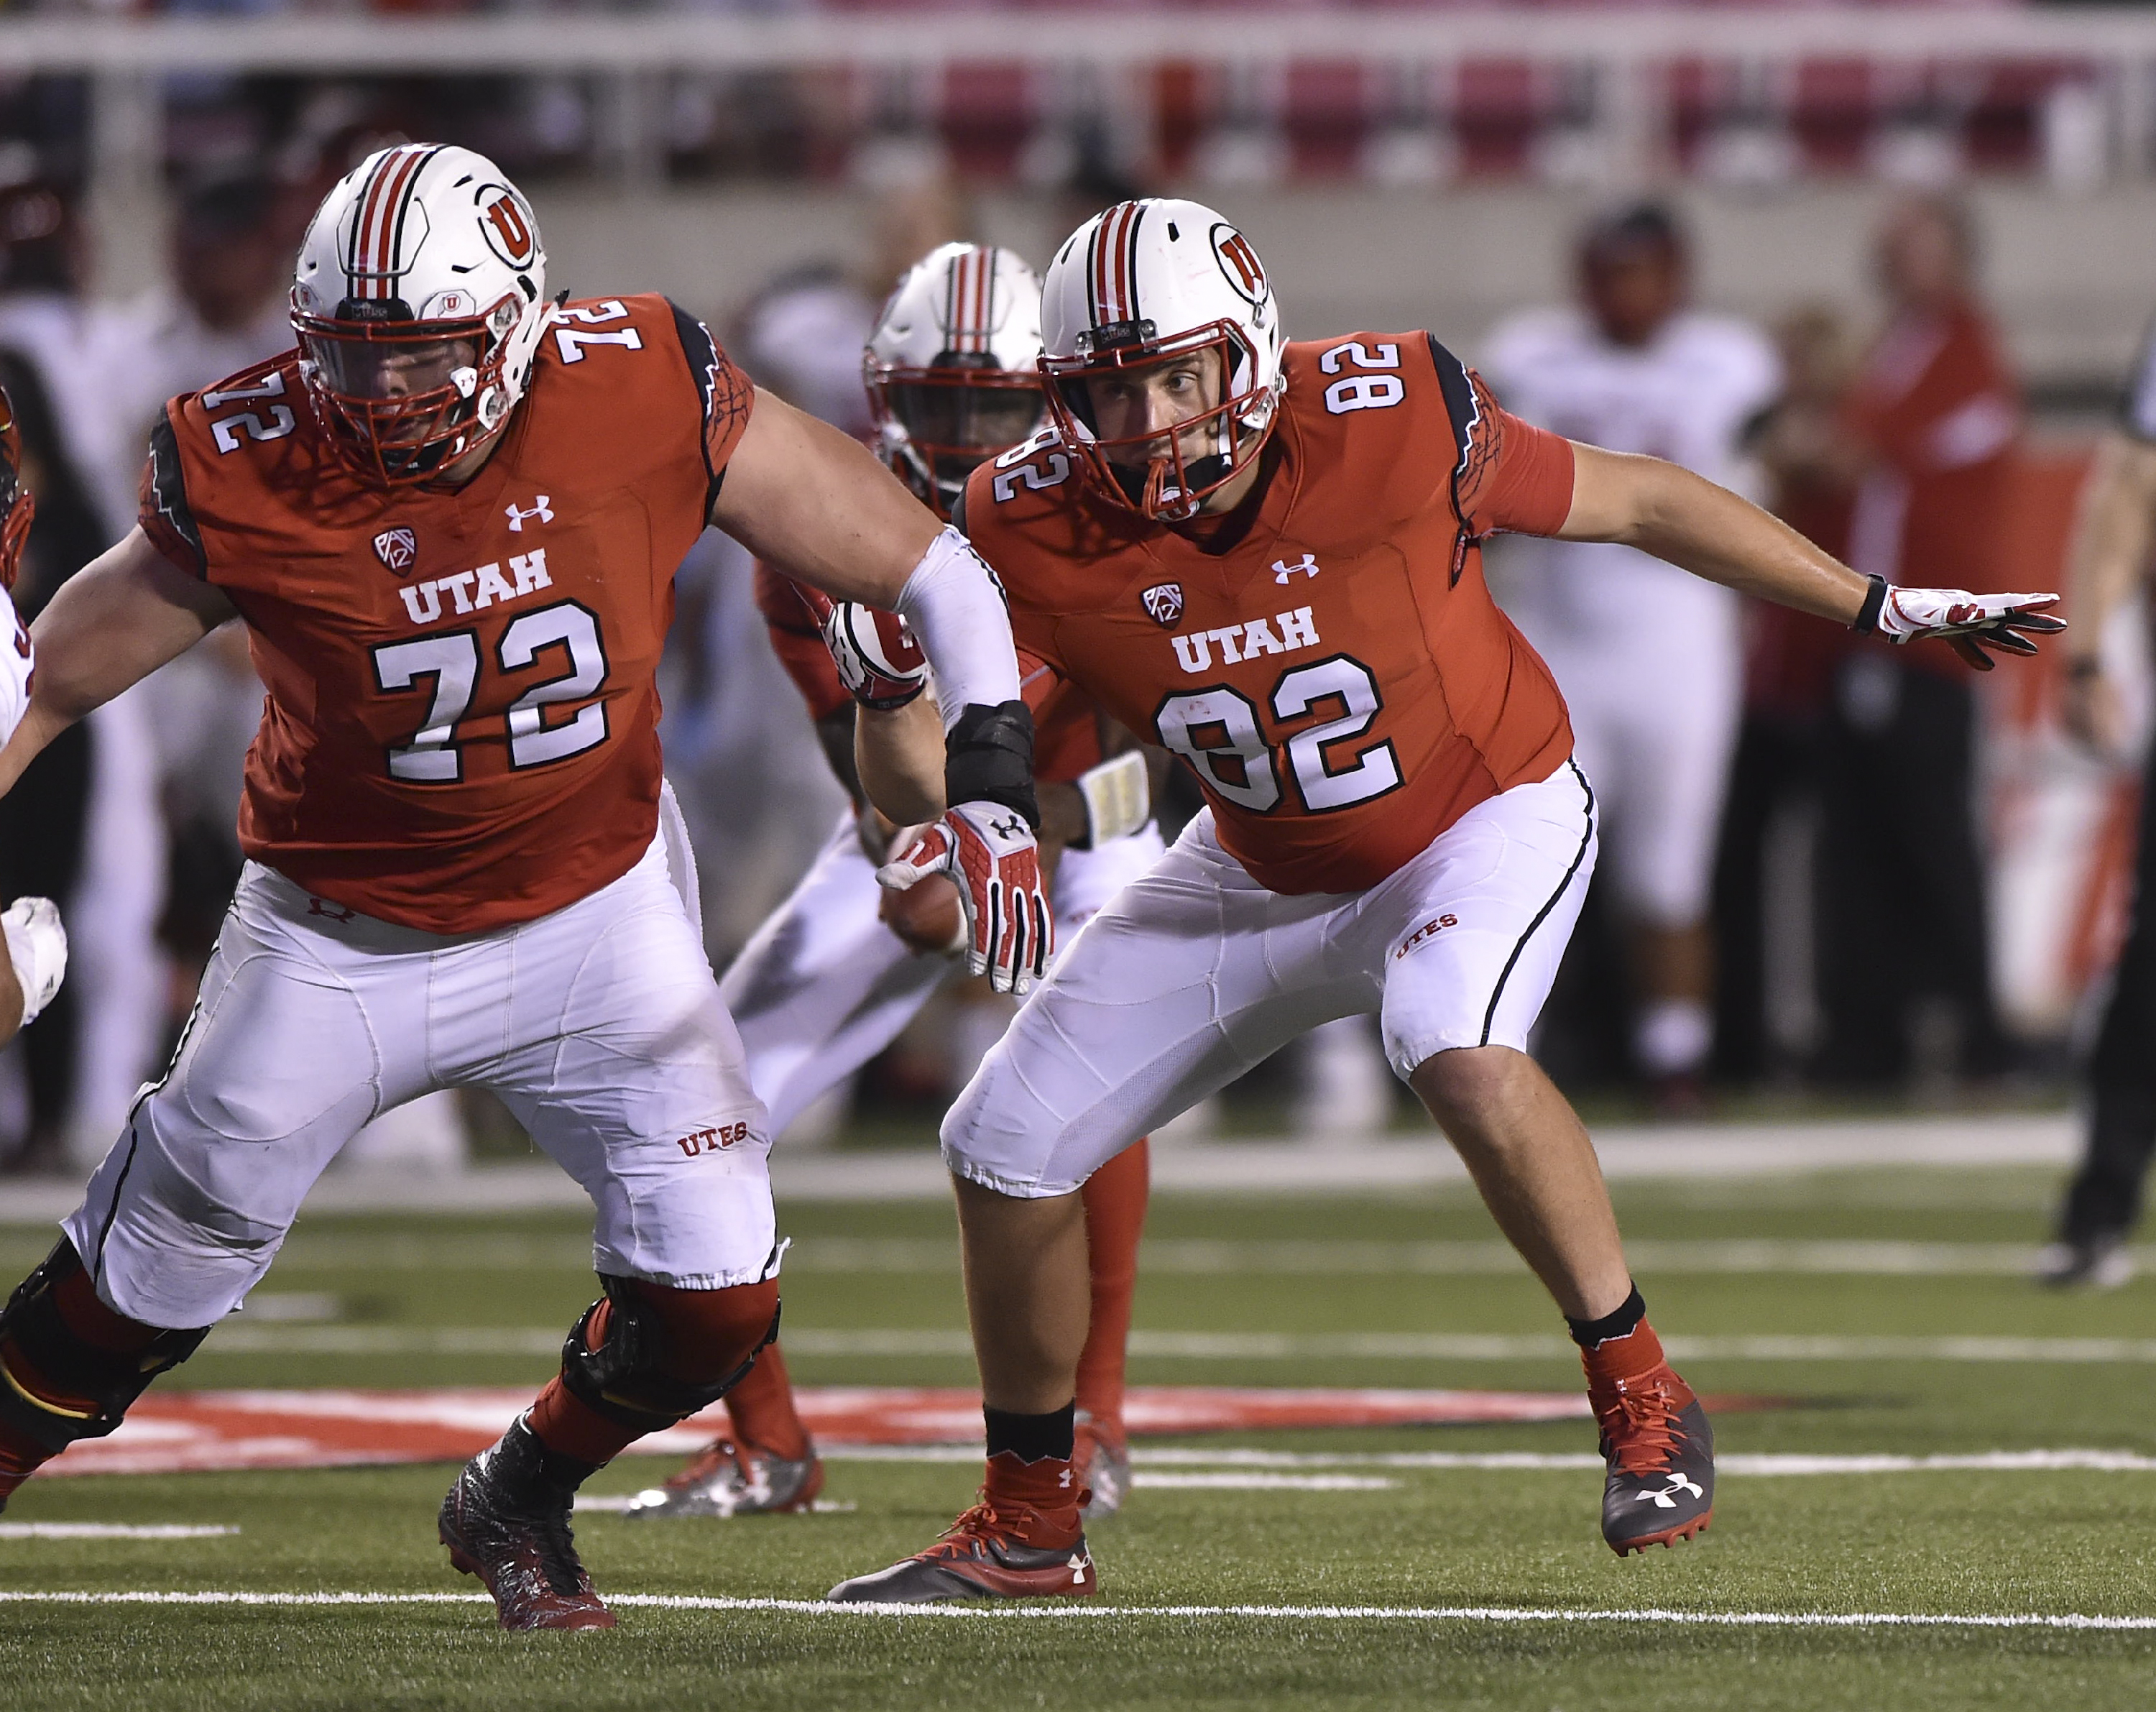 Utah offensive lineman Garett Bolles (72) is a possible first-round draft pick. (Getty Images)